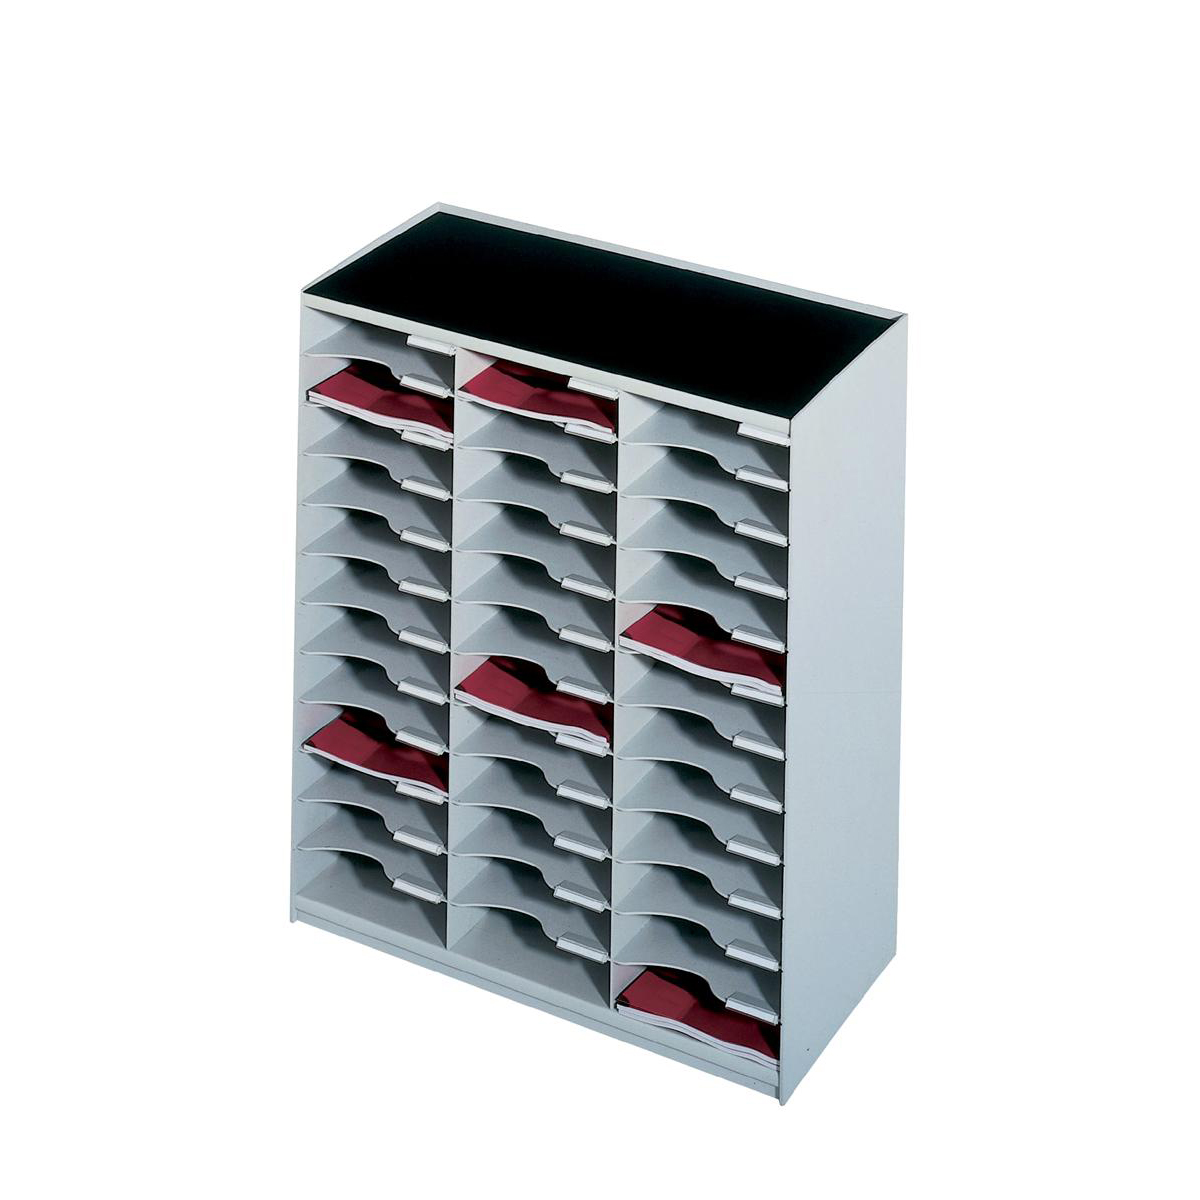 Image for Paperflow Modulodoc Mailsorter Plastic Stackable 36x A4 Compartments W674xD308xH791mm Grey Ref 80302